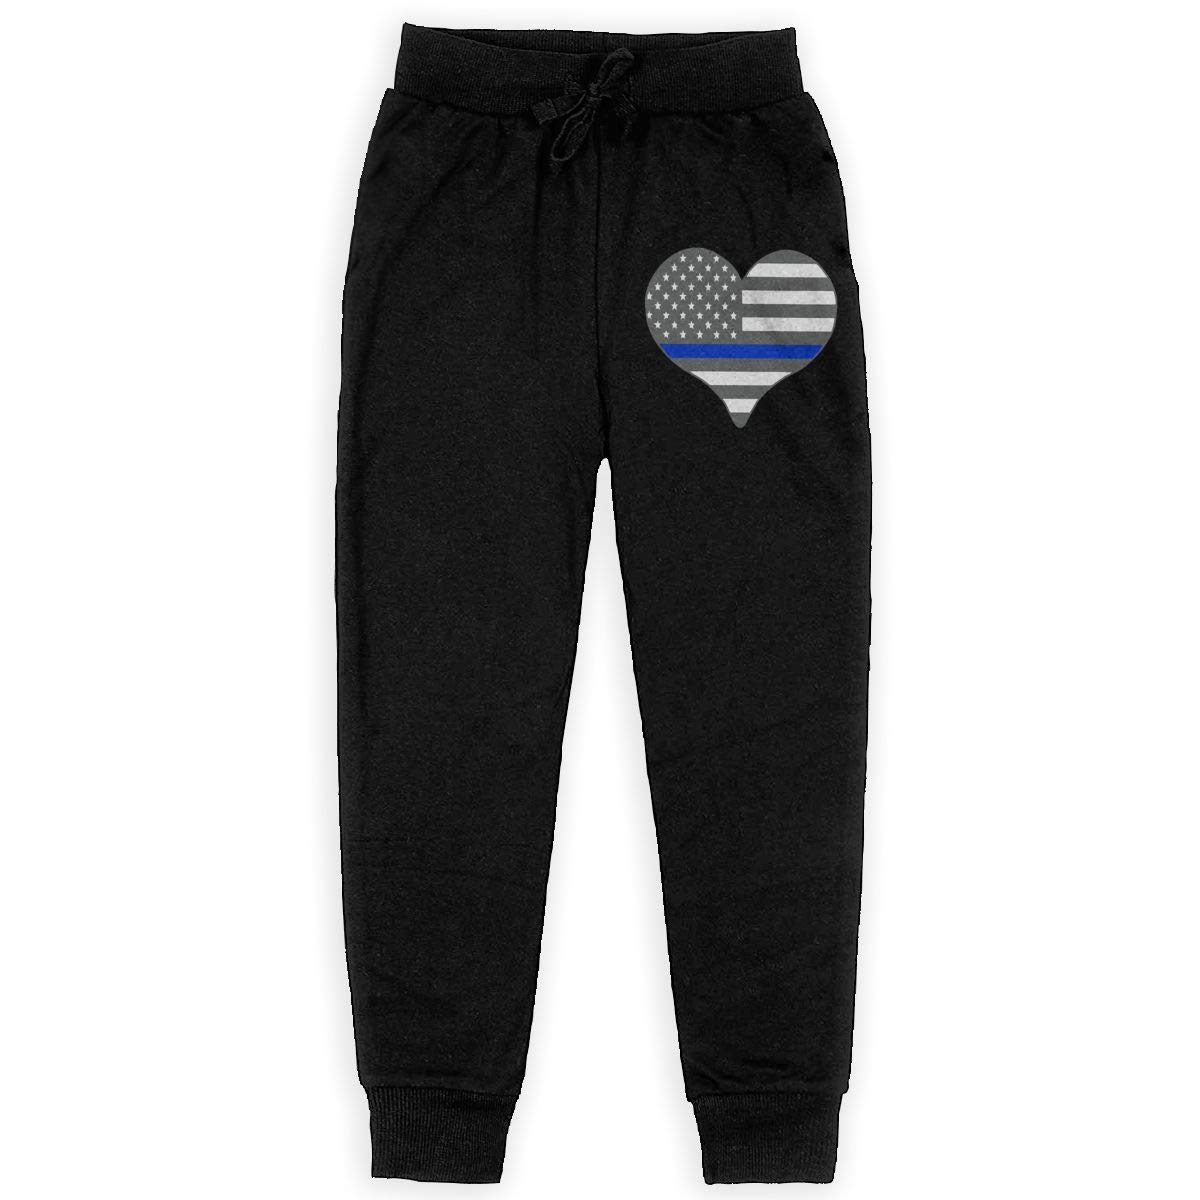 Capri Jogger for Youth Casual I Love Police Thin Blue Line Cotton Sweatpants for Youth